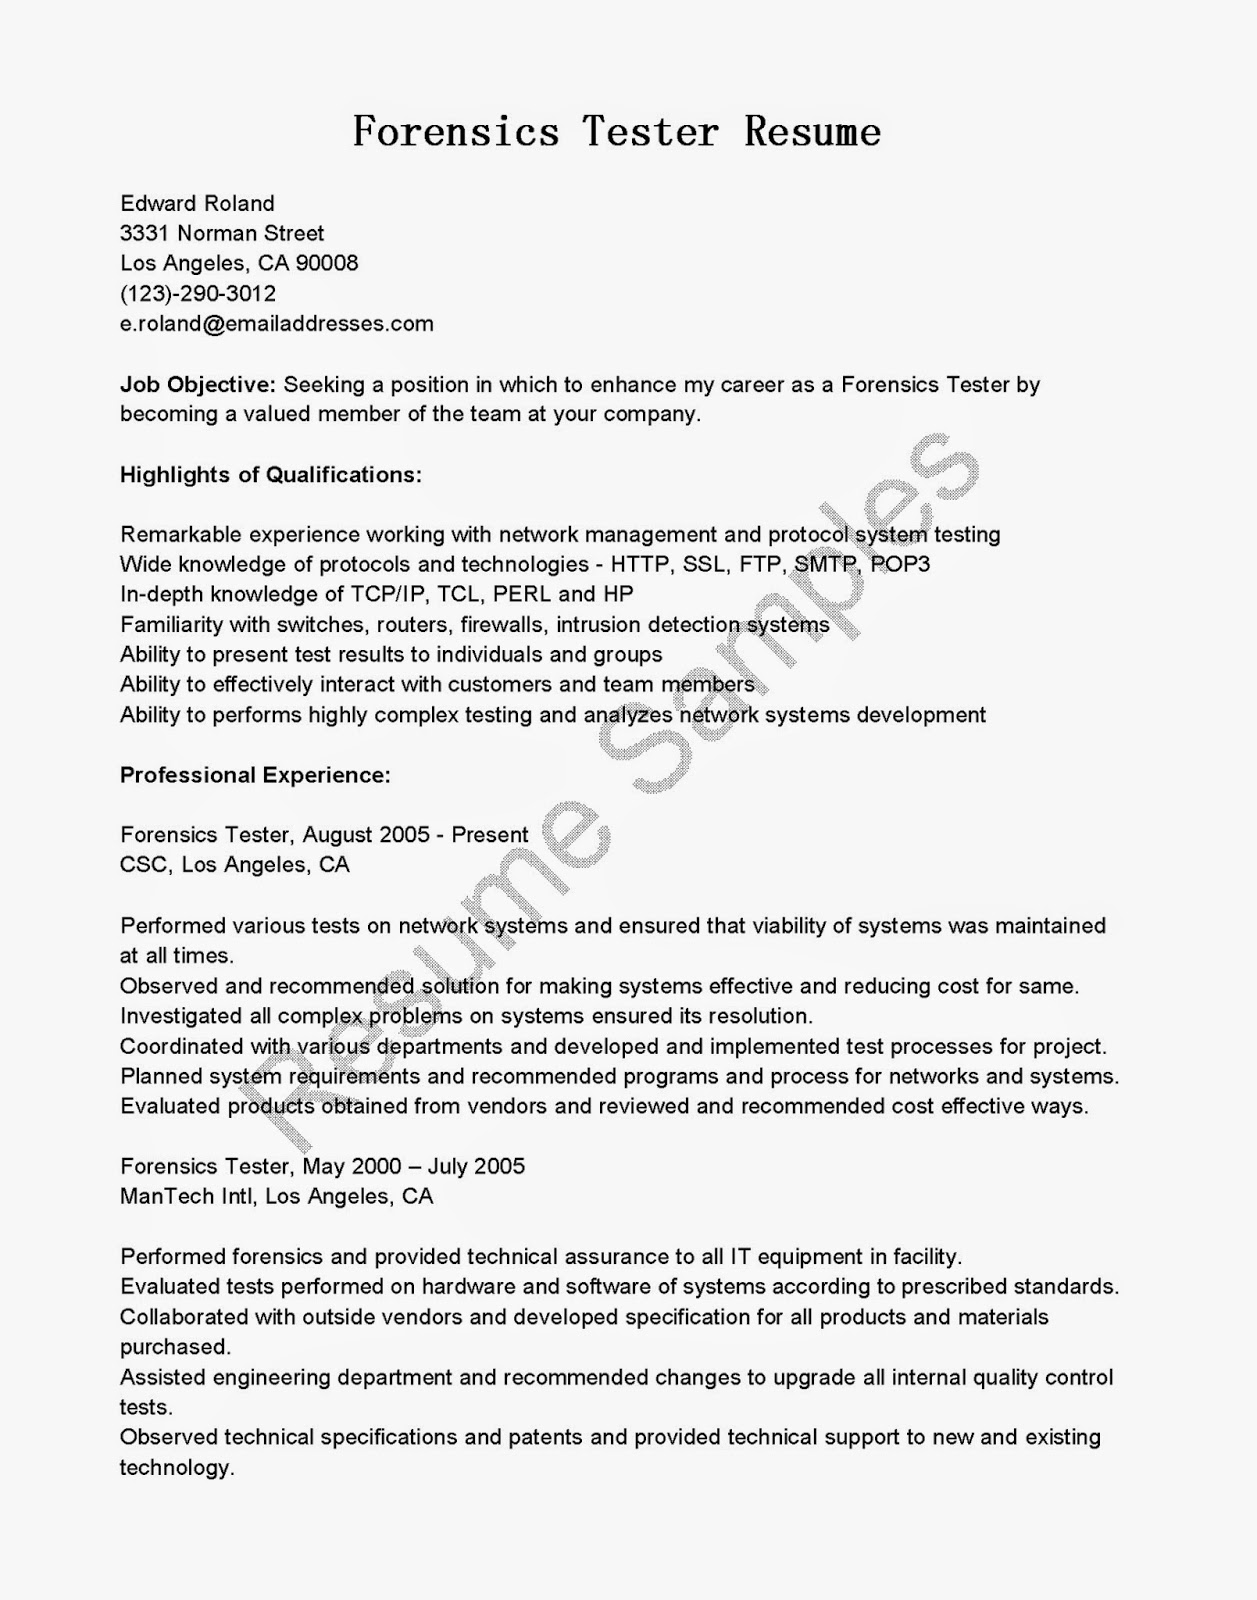 Sample Resume For Manual Testing Fresher How To Write Qa Test Technician